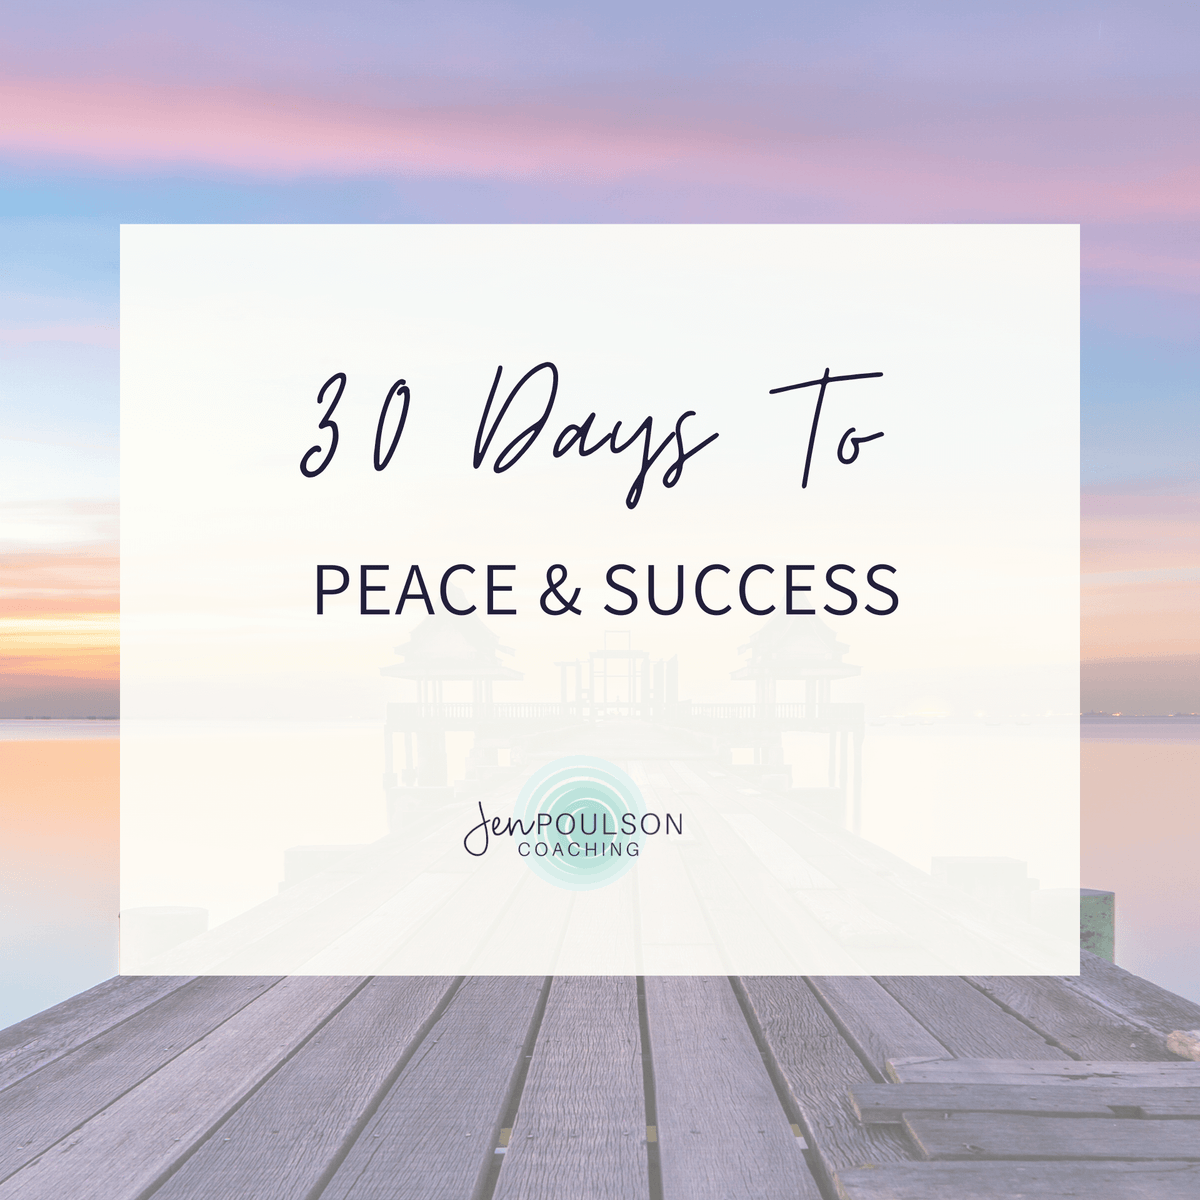 30 Days to Peace & Success